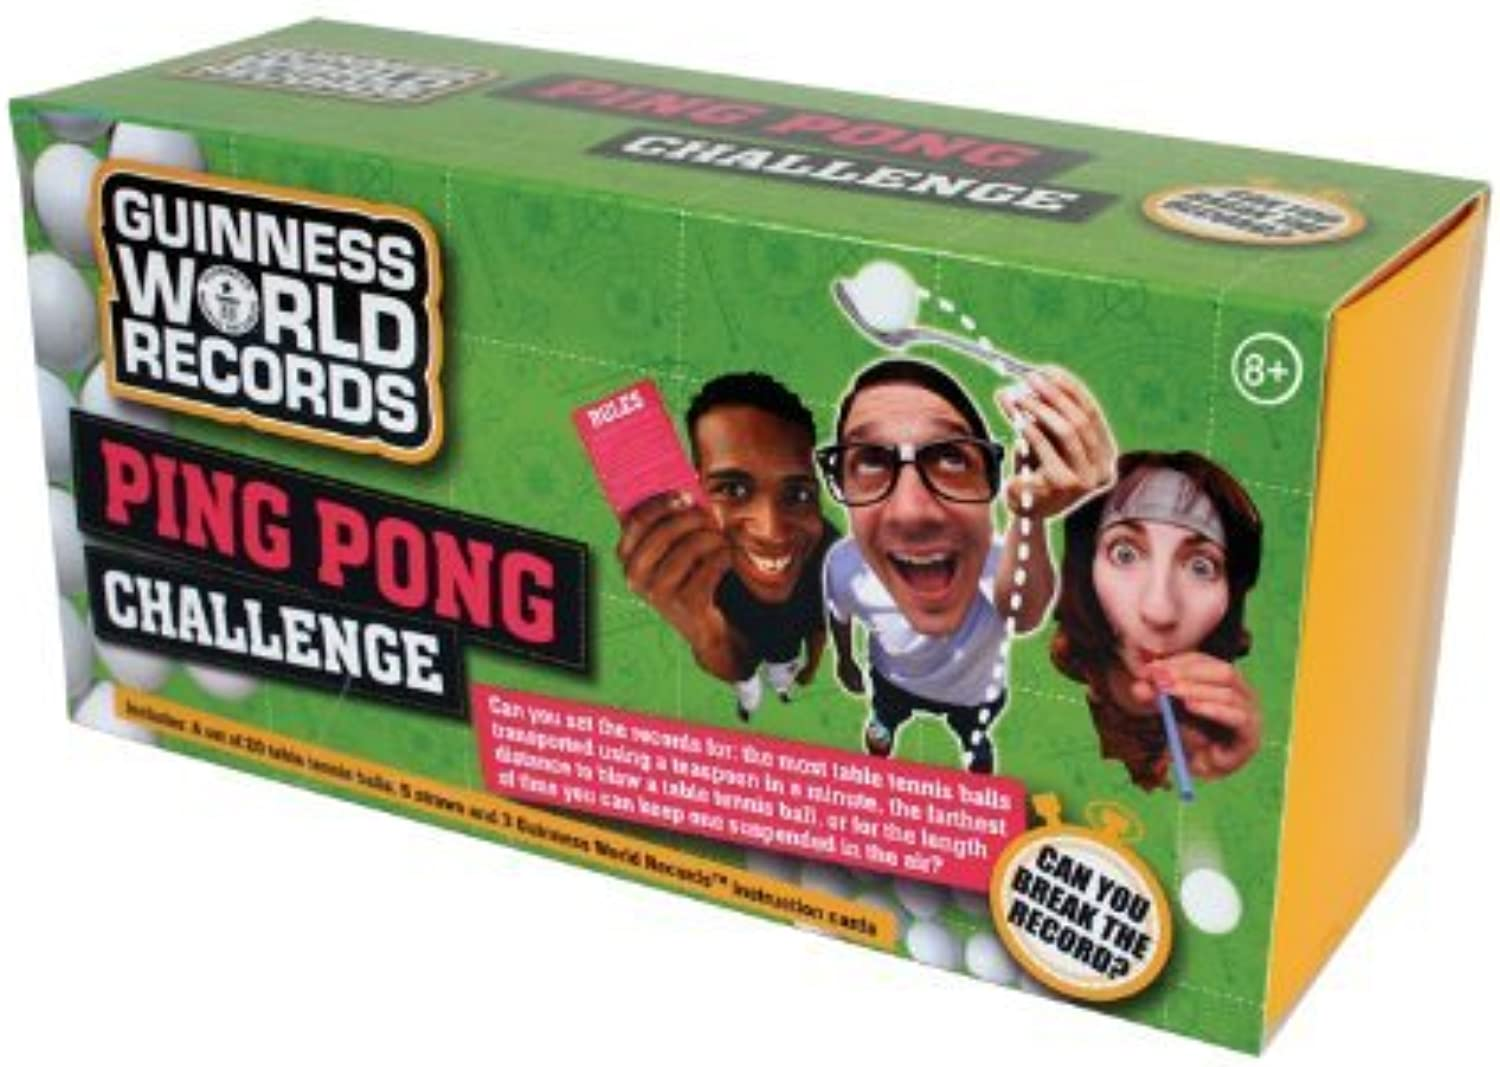 Guinness World Record Ping Pong Challenge by Play Visions